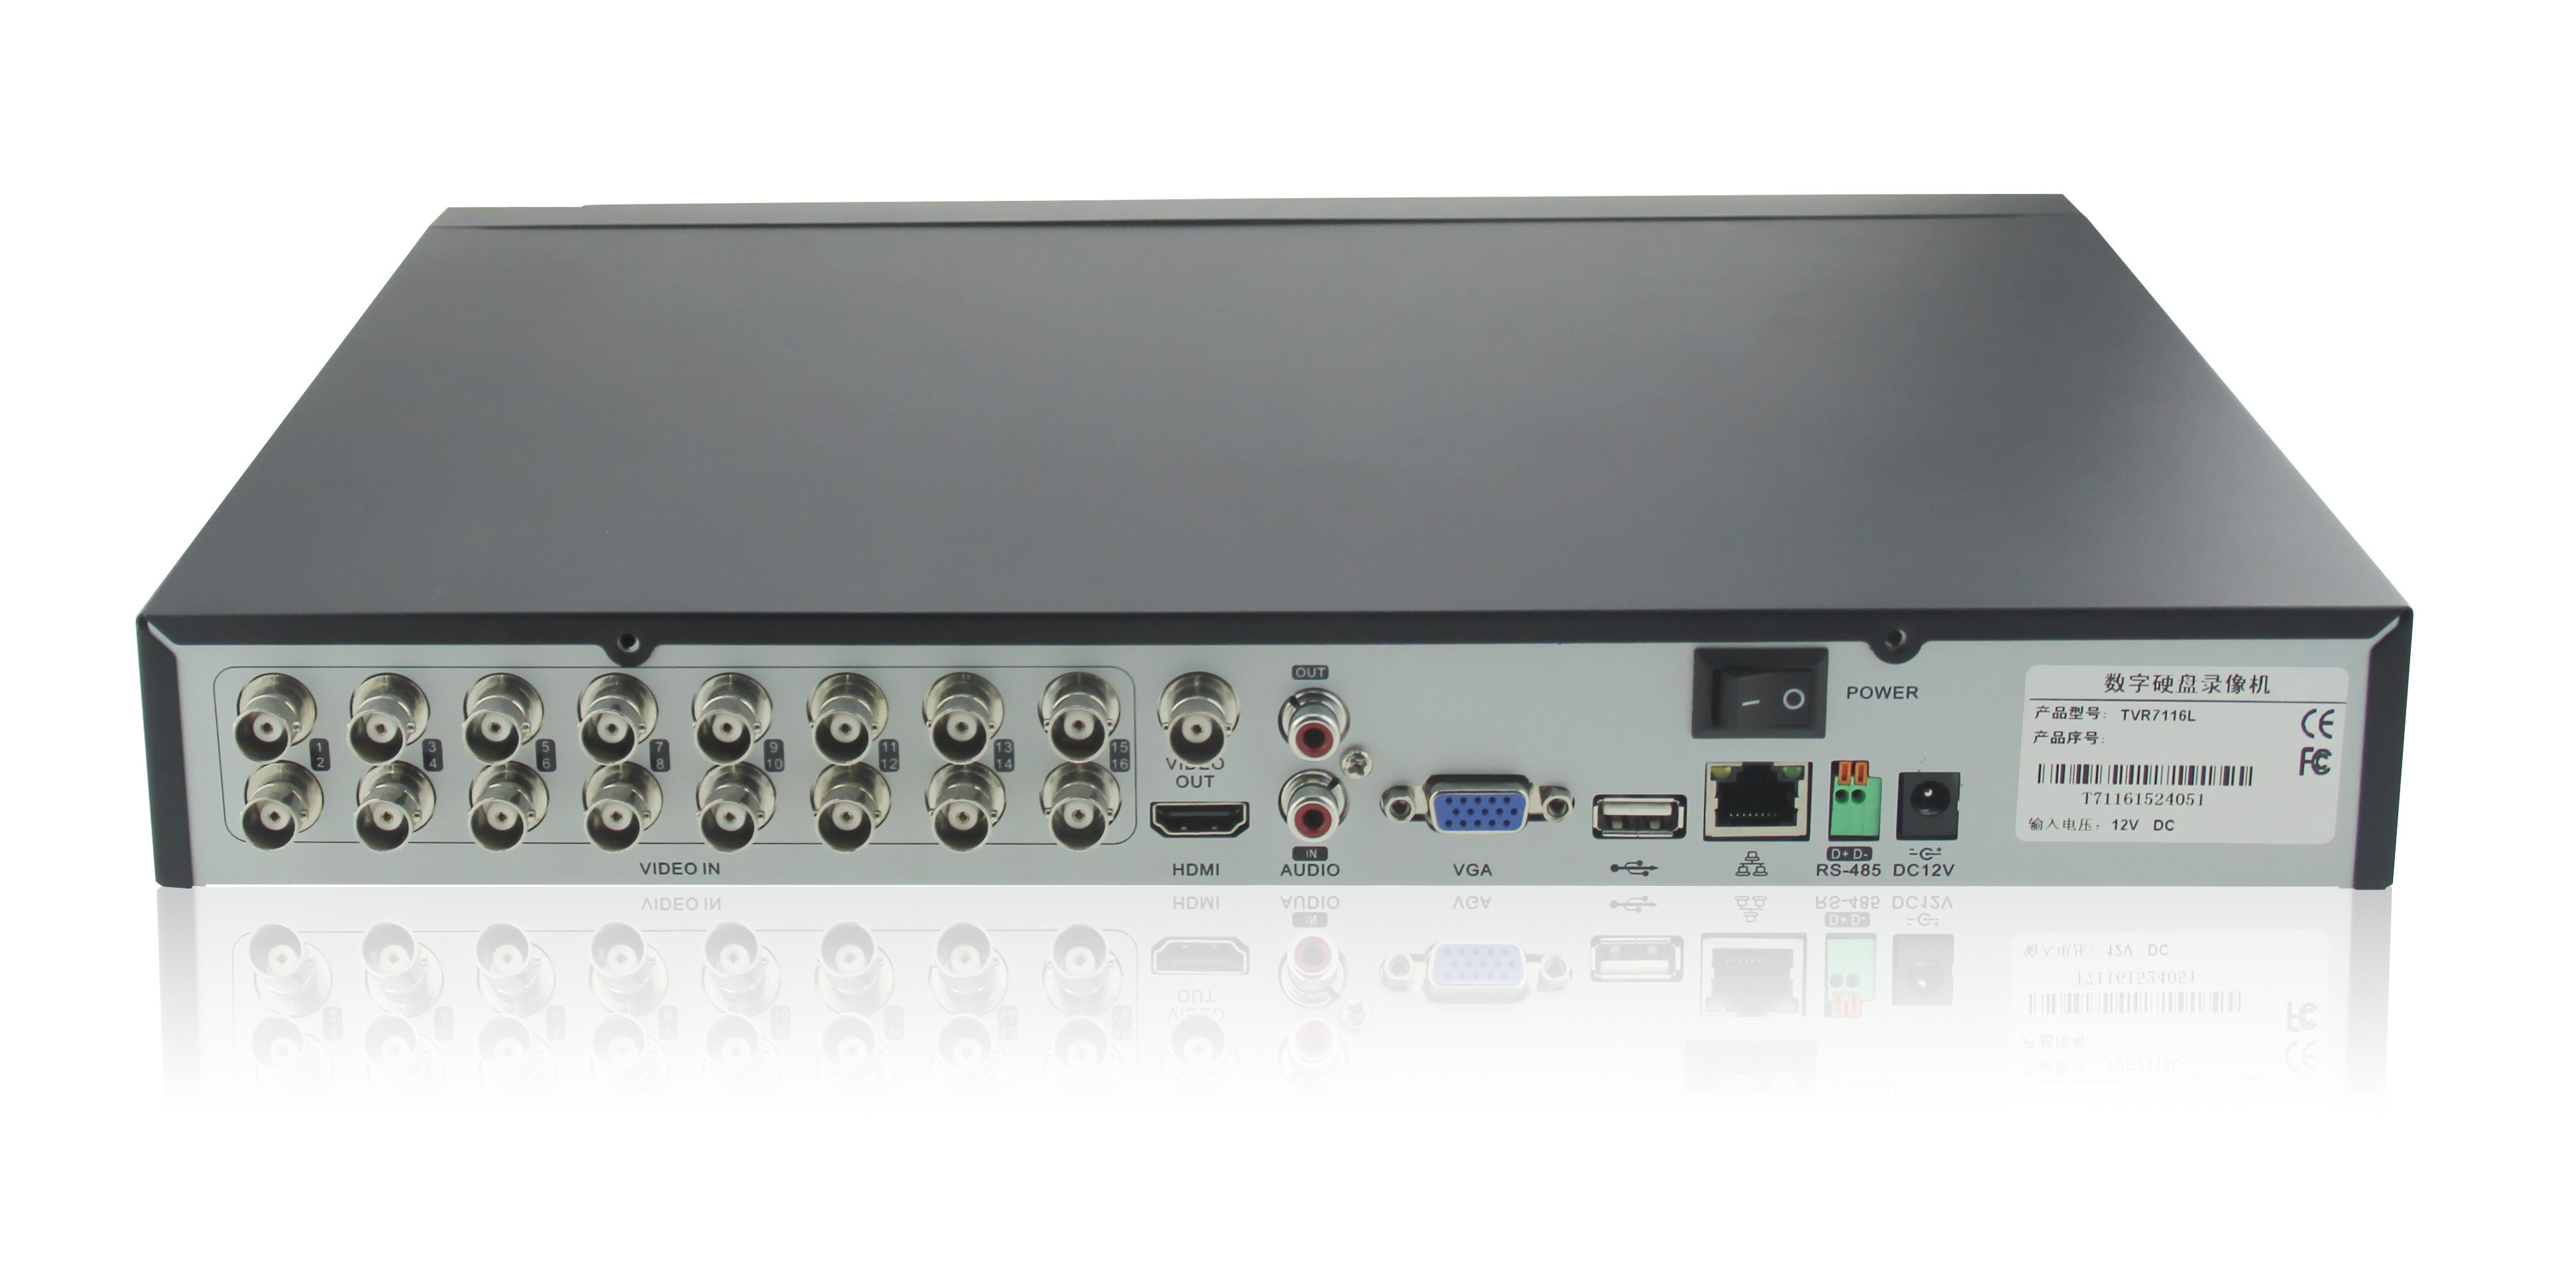 245TVR16 - 16-Channel HD-TVI DVR